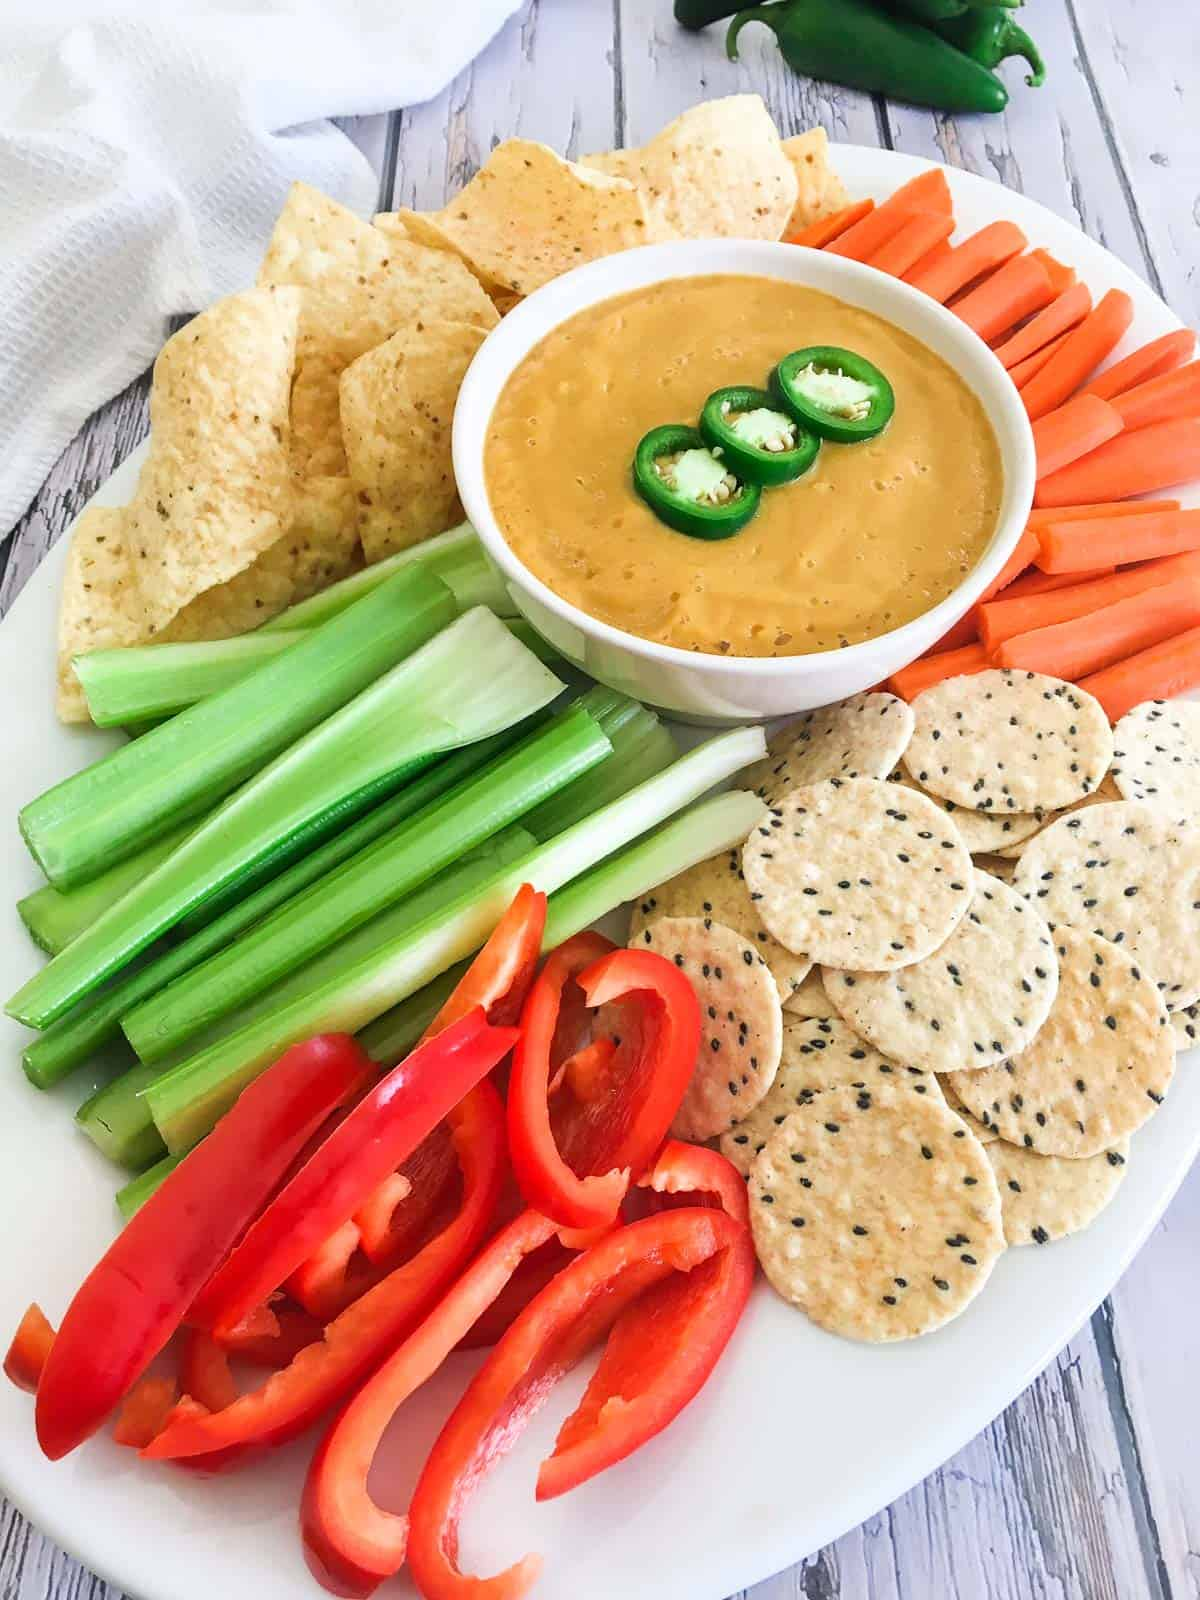 Platter of chips, crackers and veggies with bowl of vegan cauliflower dip in the middle.